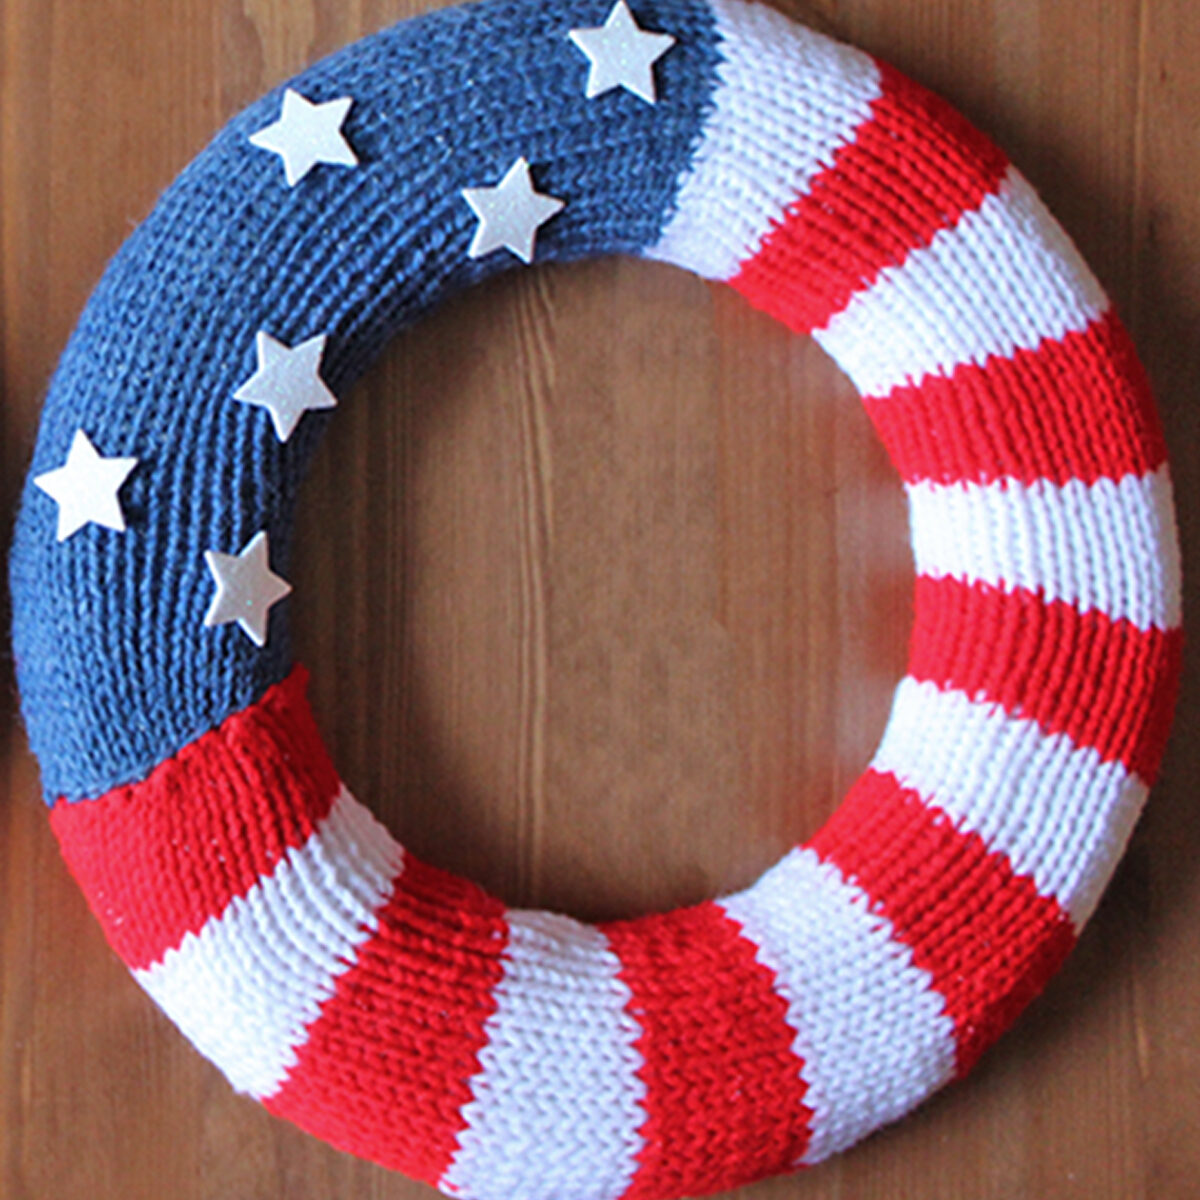 Knitted wreath in american flag design with red, white, and blue yarn colors.